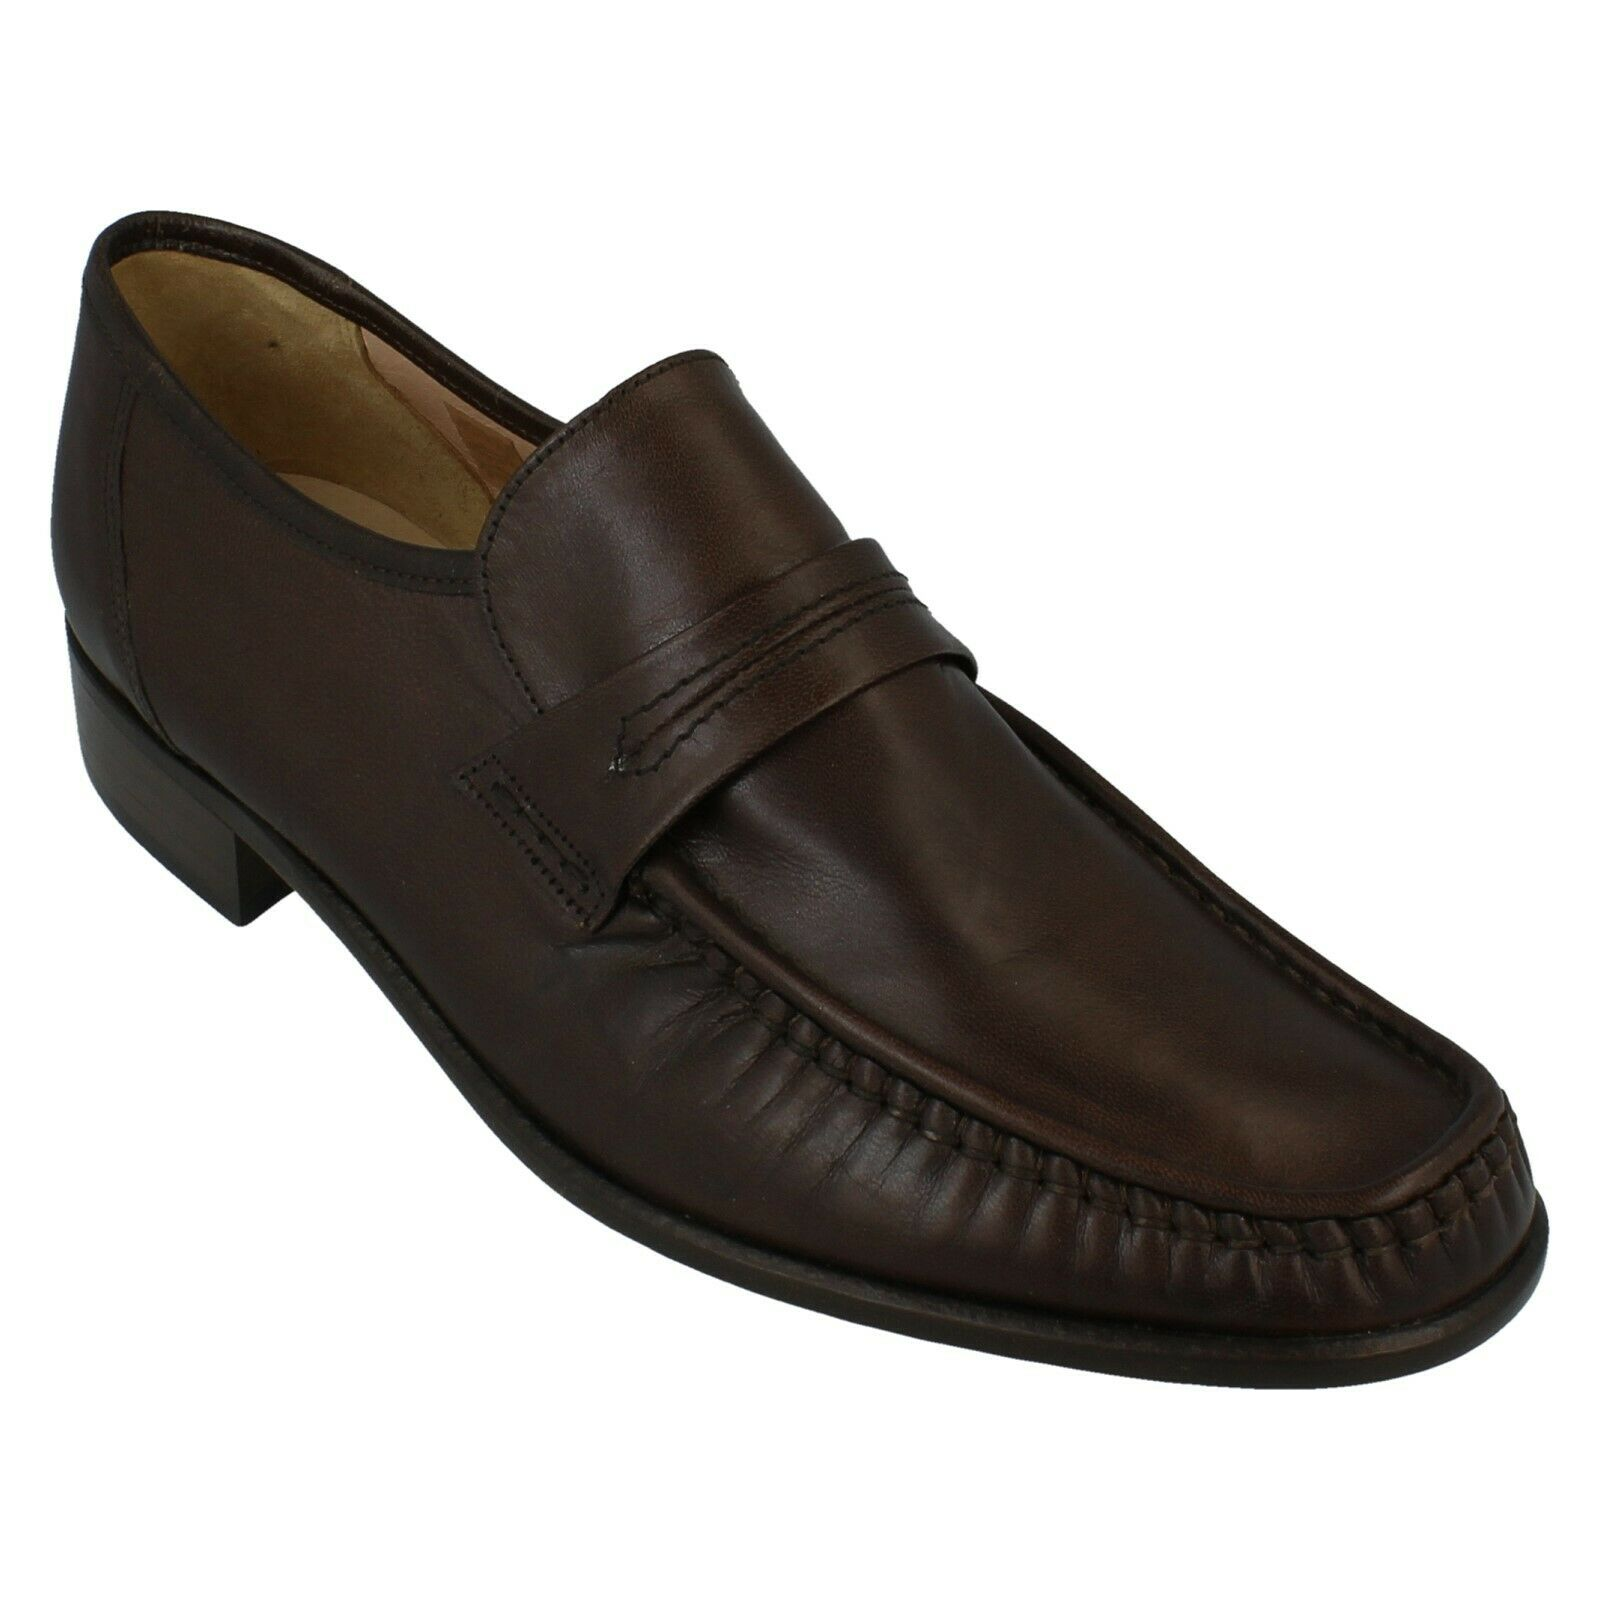 Mens Grenson Smart Leather Slip On shoes - Watford - Brown - UK 8 - ExDisplay